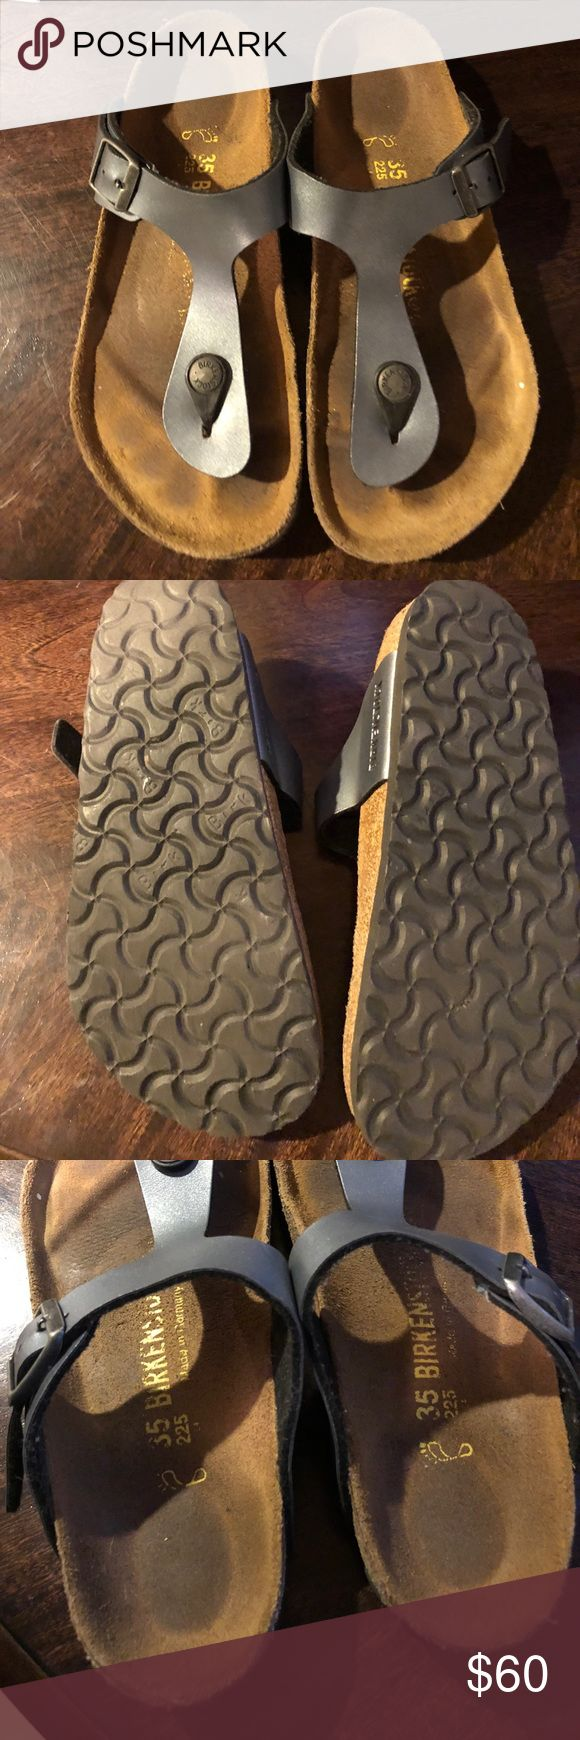 Birkenstock Gizeh size 35 Birkenstock Gizeh size 35. Nubuck things.  Looks gray or dark silver.  Great condition.  Few signs of wear on sole but no other signs. Birkenstock Shoes Sandals